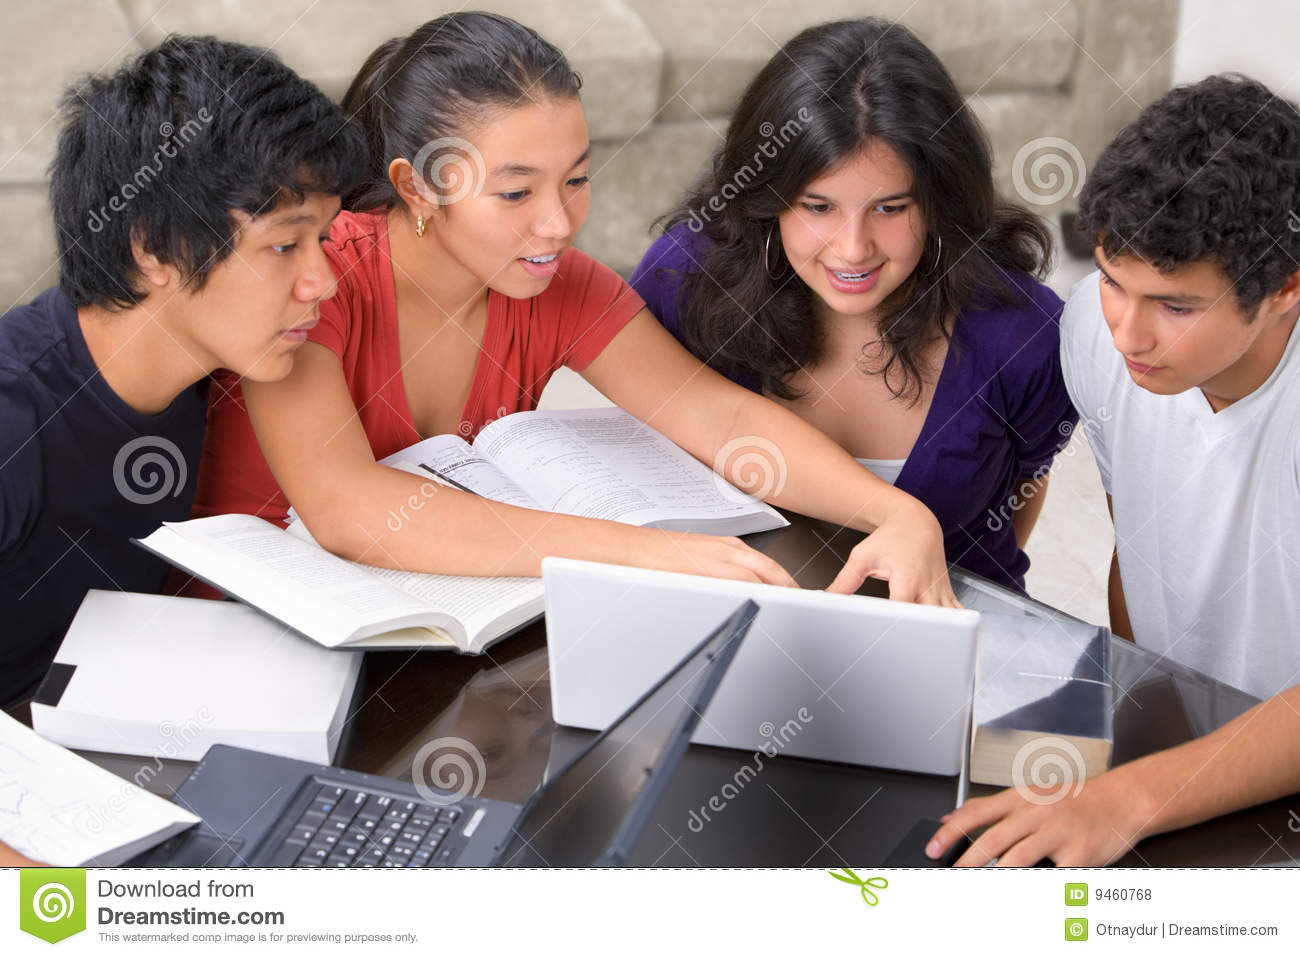 How to Form an Online Study Group | Everest Online Latest News and ...